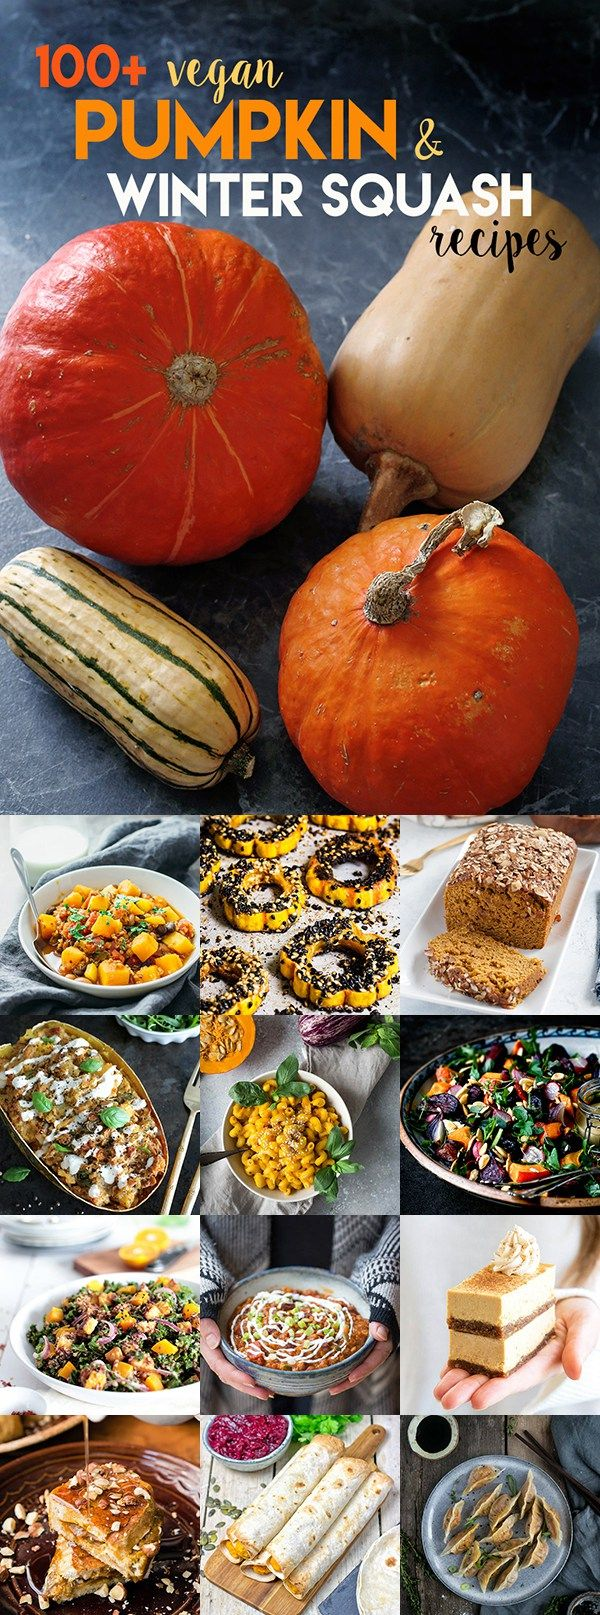 100+ Delicious Vegan Pumpkin & Squash Recipes - Sweet or savoury, healthy or comfort food, quick or festive, whatever you like I have a recipe for you.